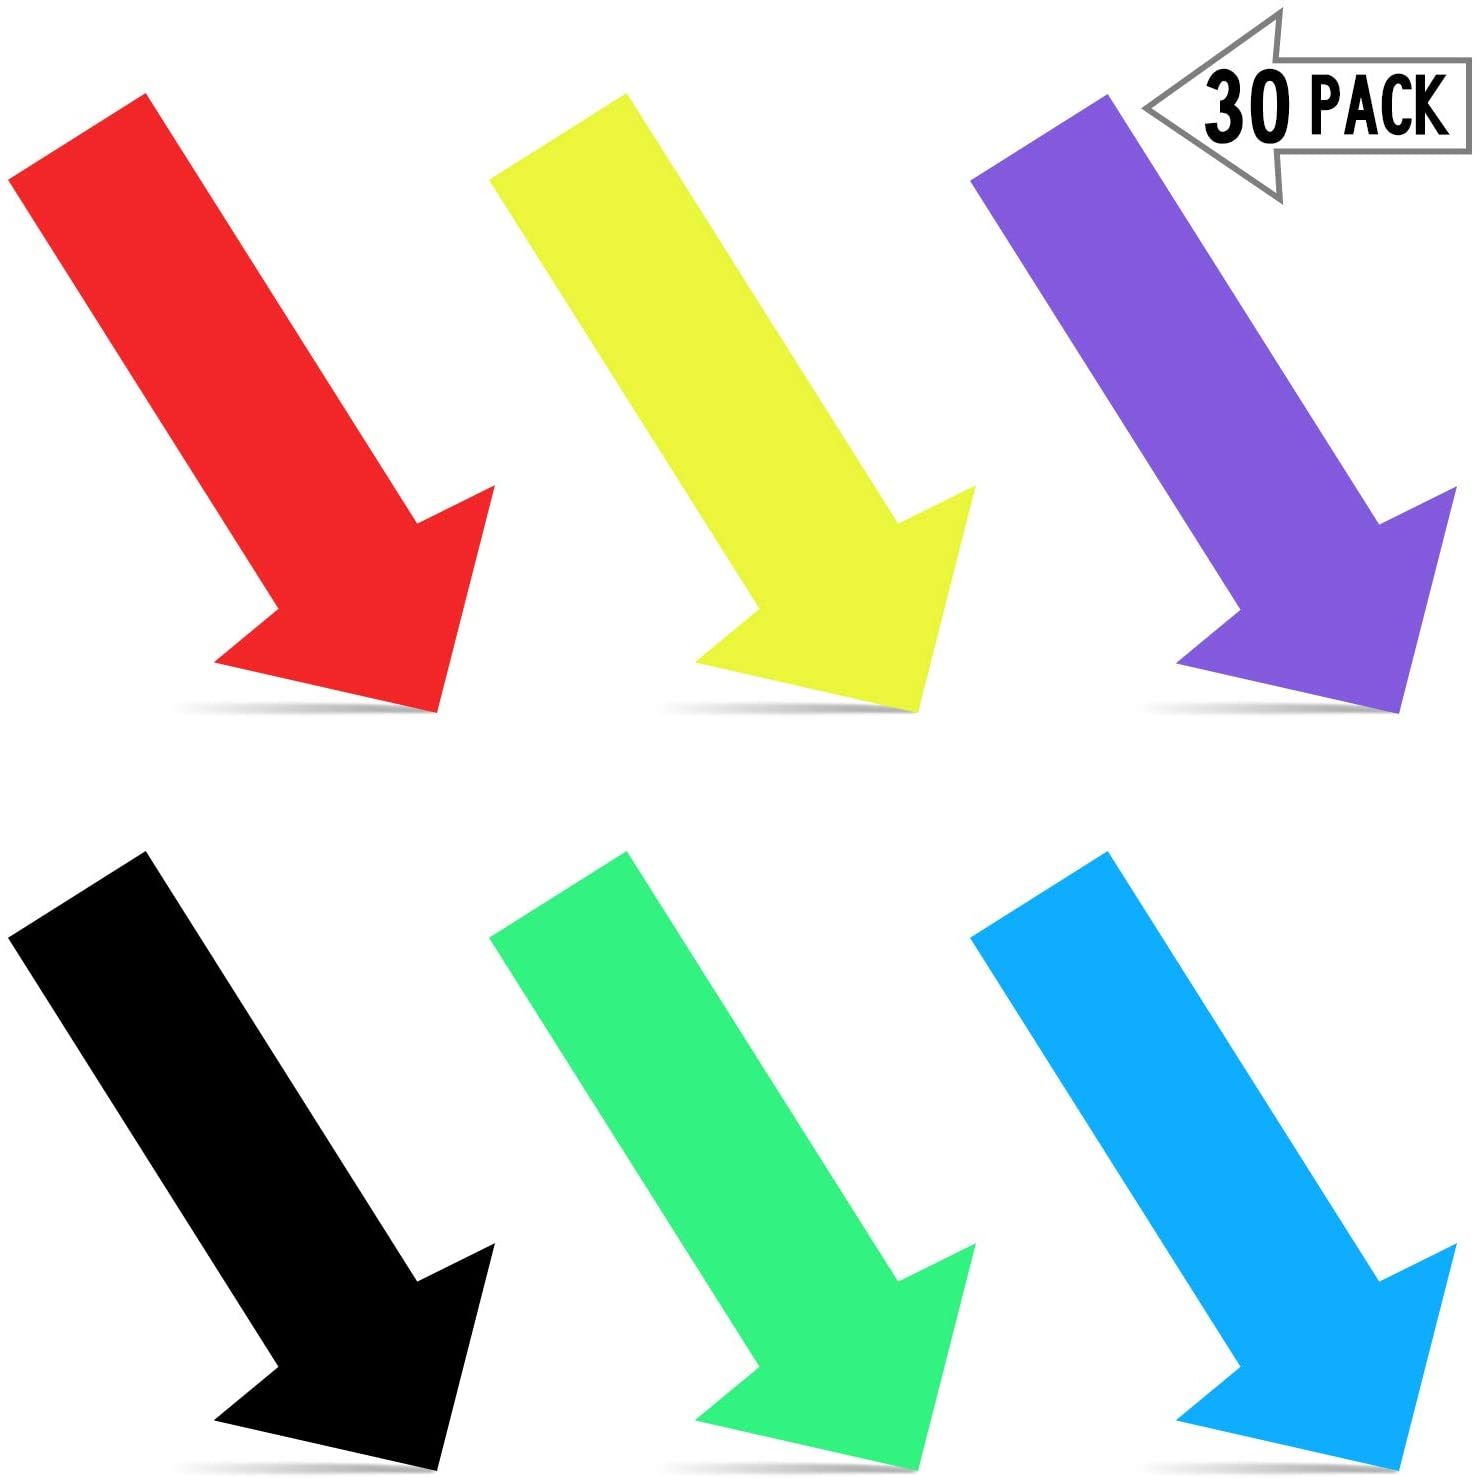 30 Pieces Arrow Stickers Removable Arrow Decal, Adhesive Directional Arrow Sign Colour Temporary Floor and Wall Glossy Directional Stickers for Warehouse, School, Traffic Flow, 12 x 6 Inch